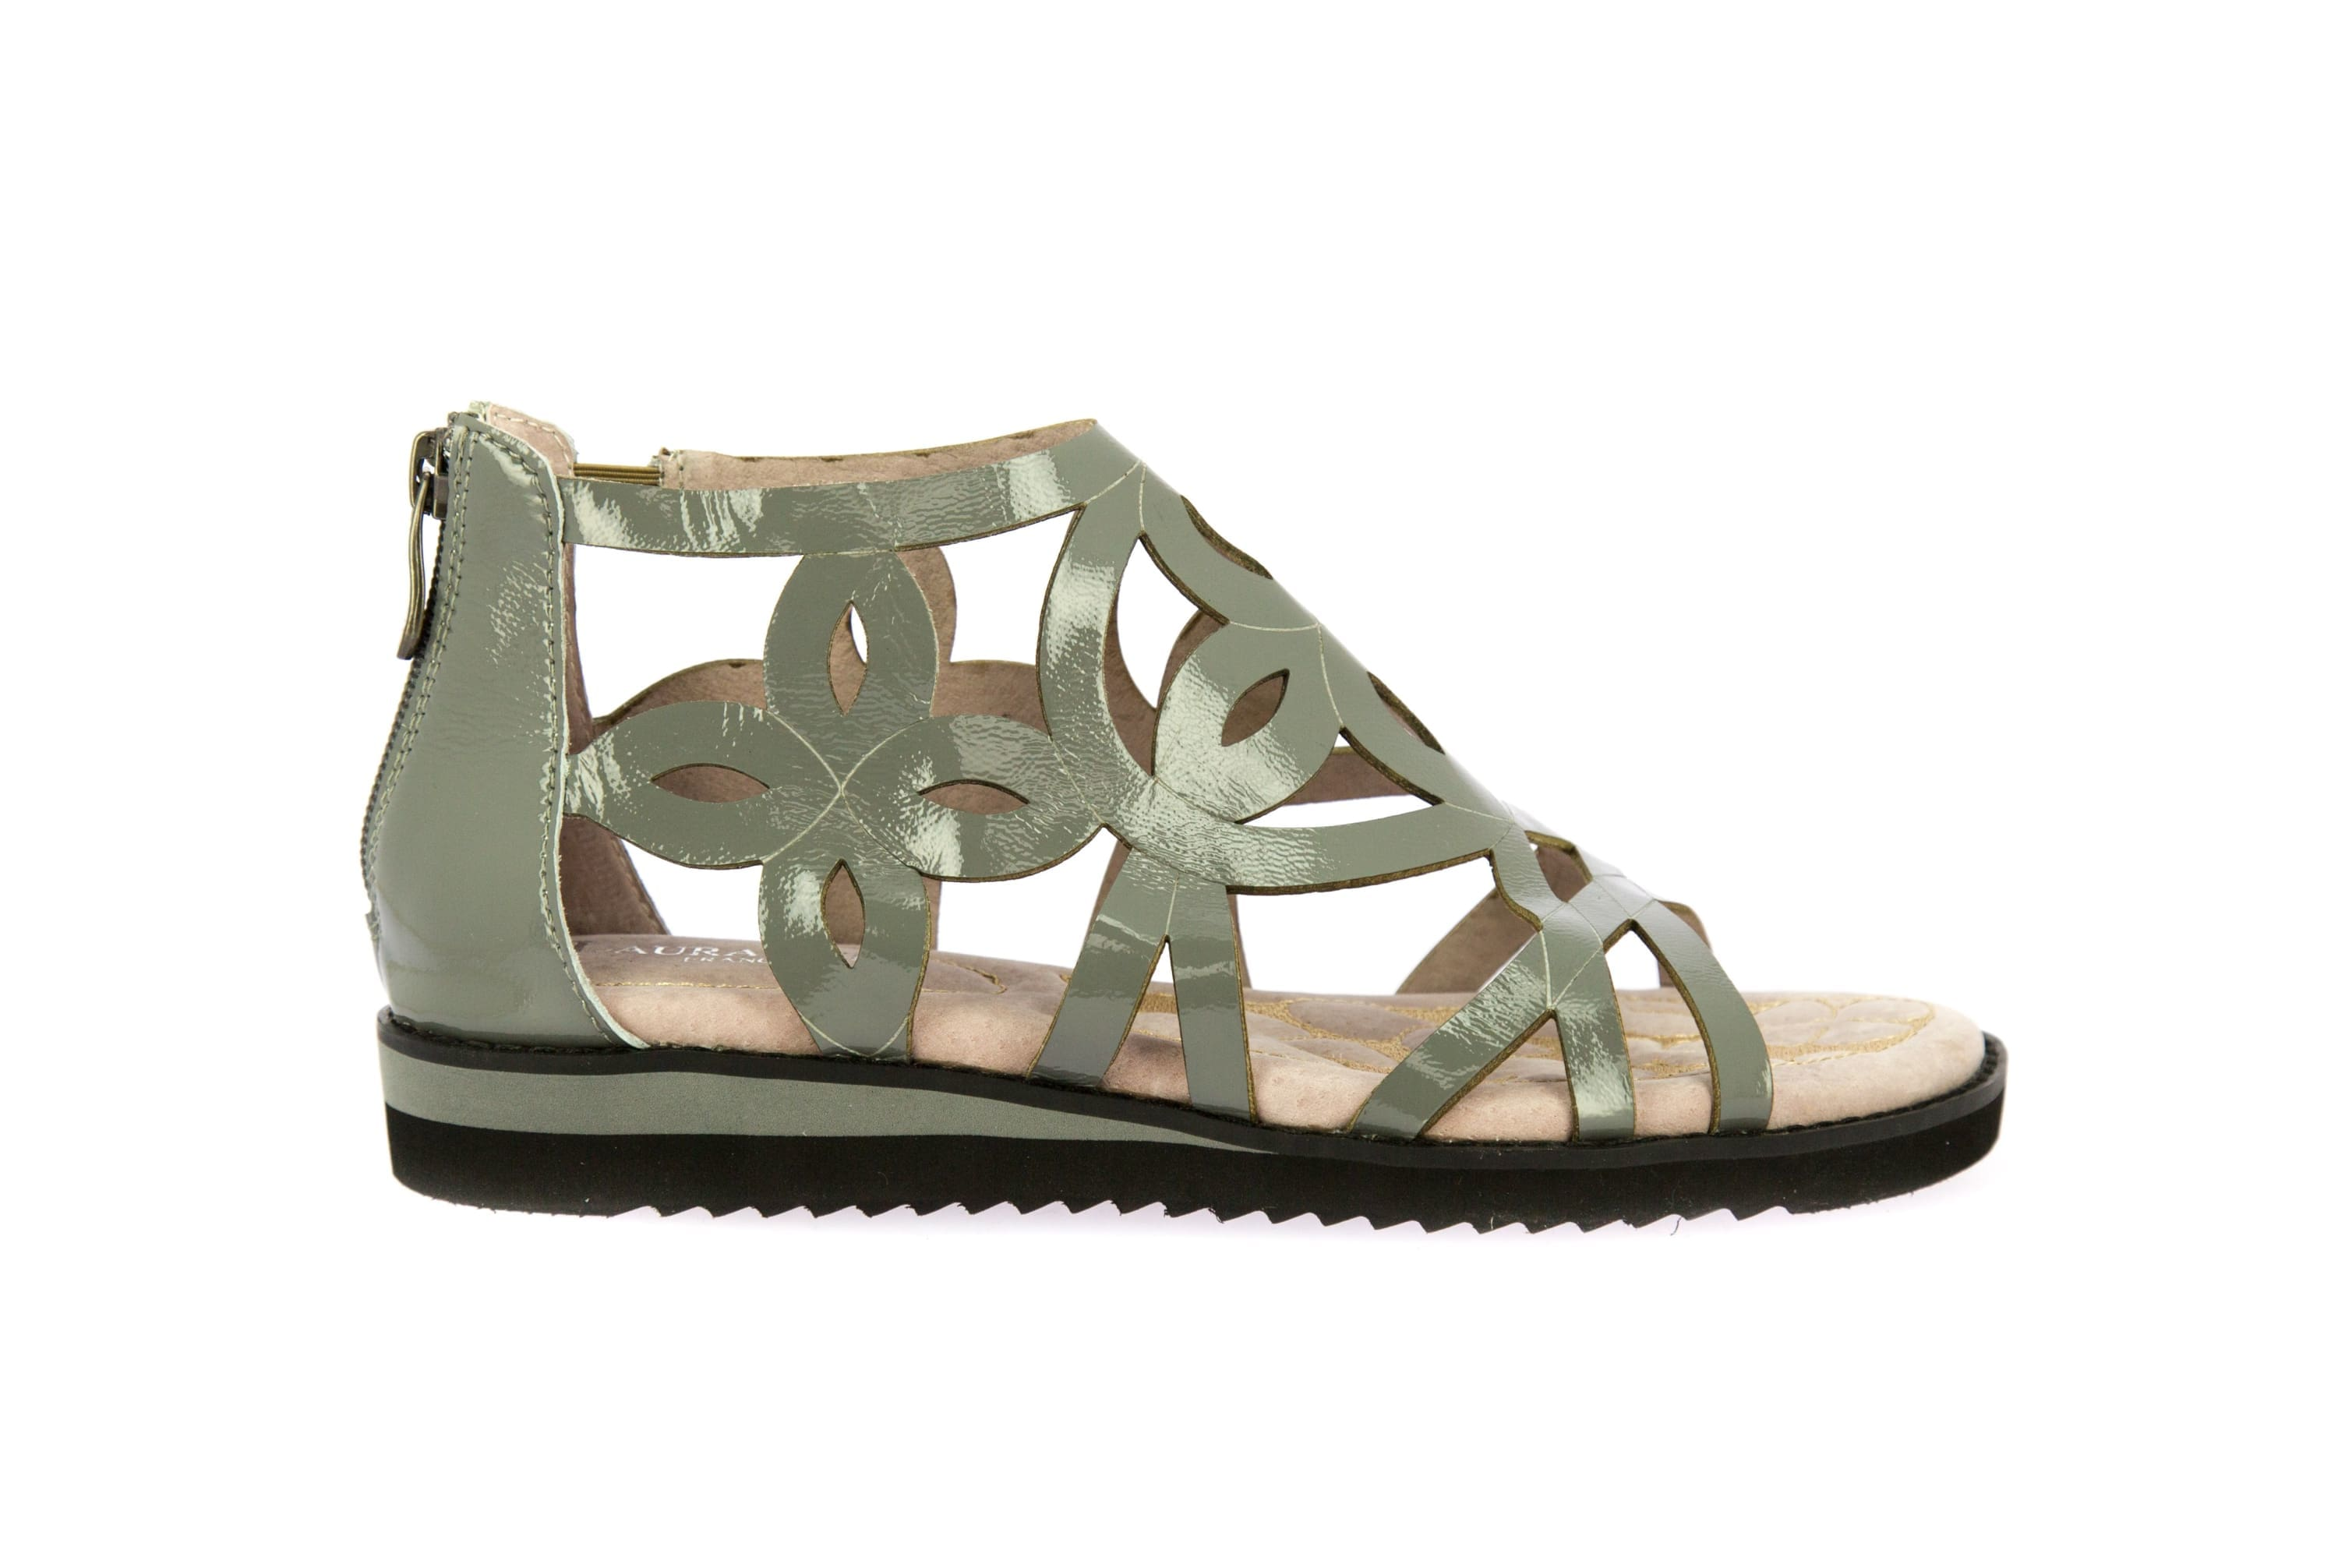 Chaussure FECLICIEO079 - 35 / GREY - Sandale